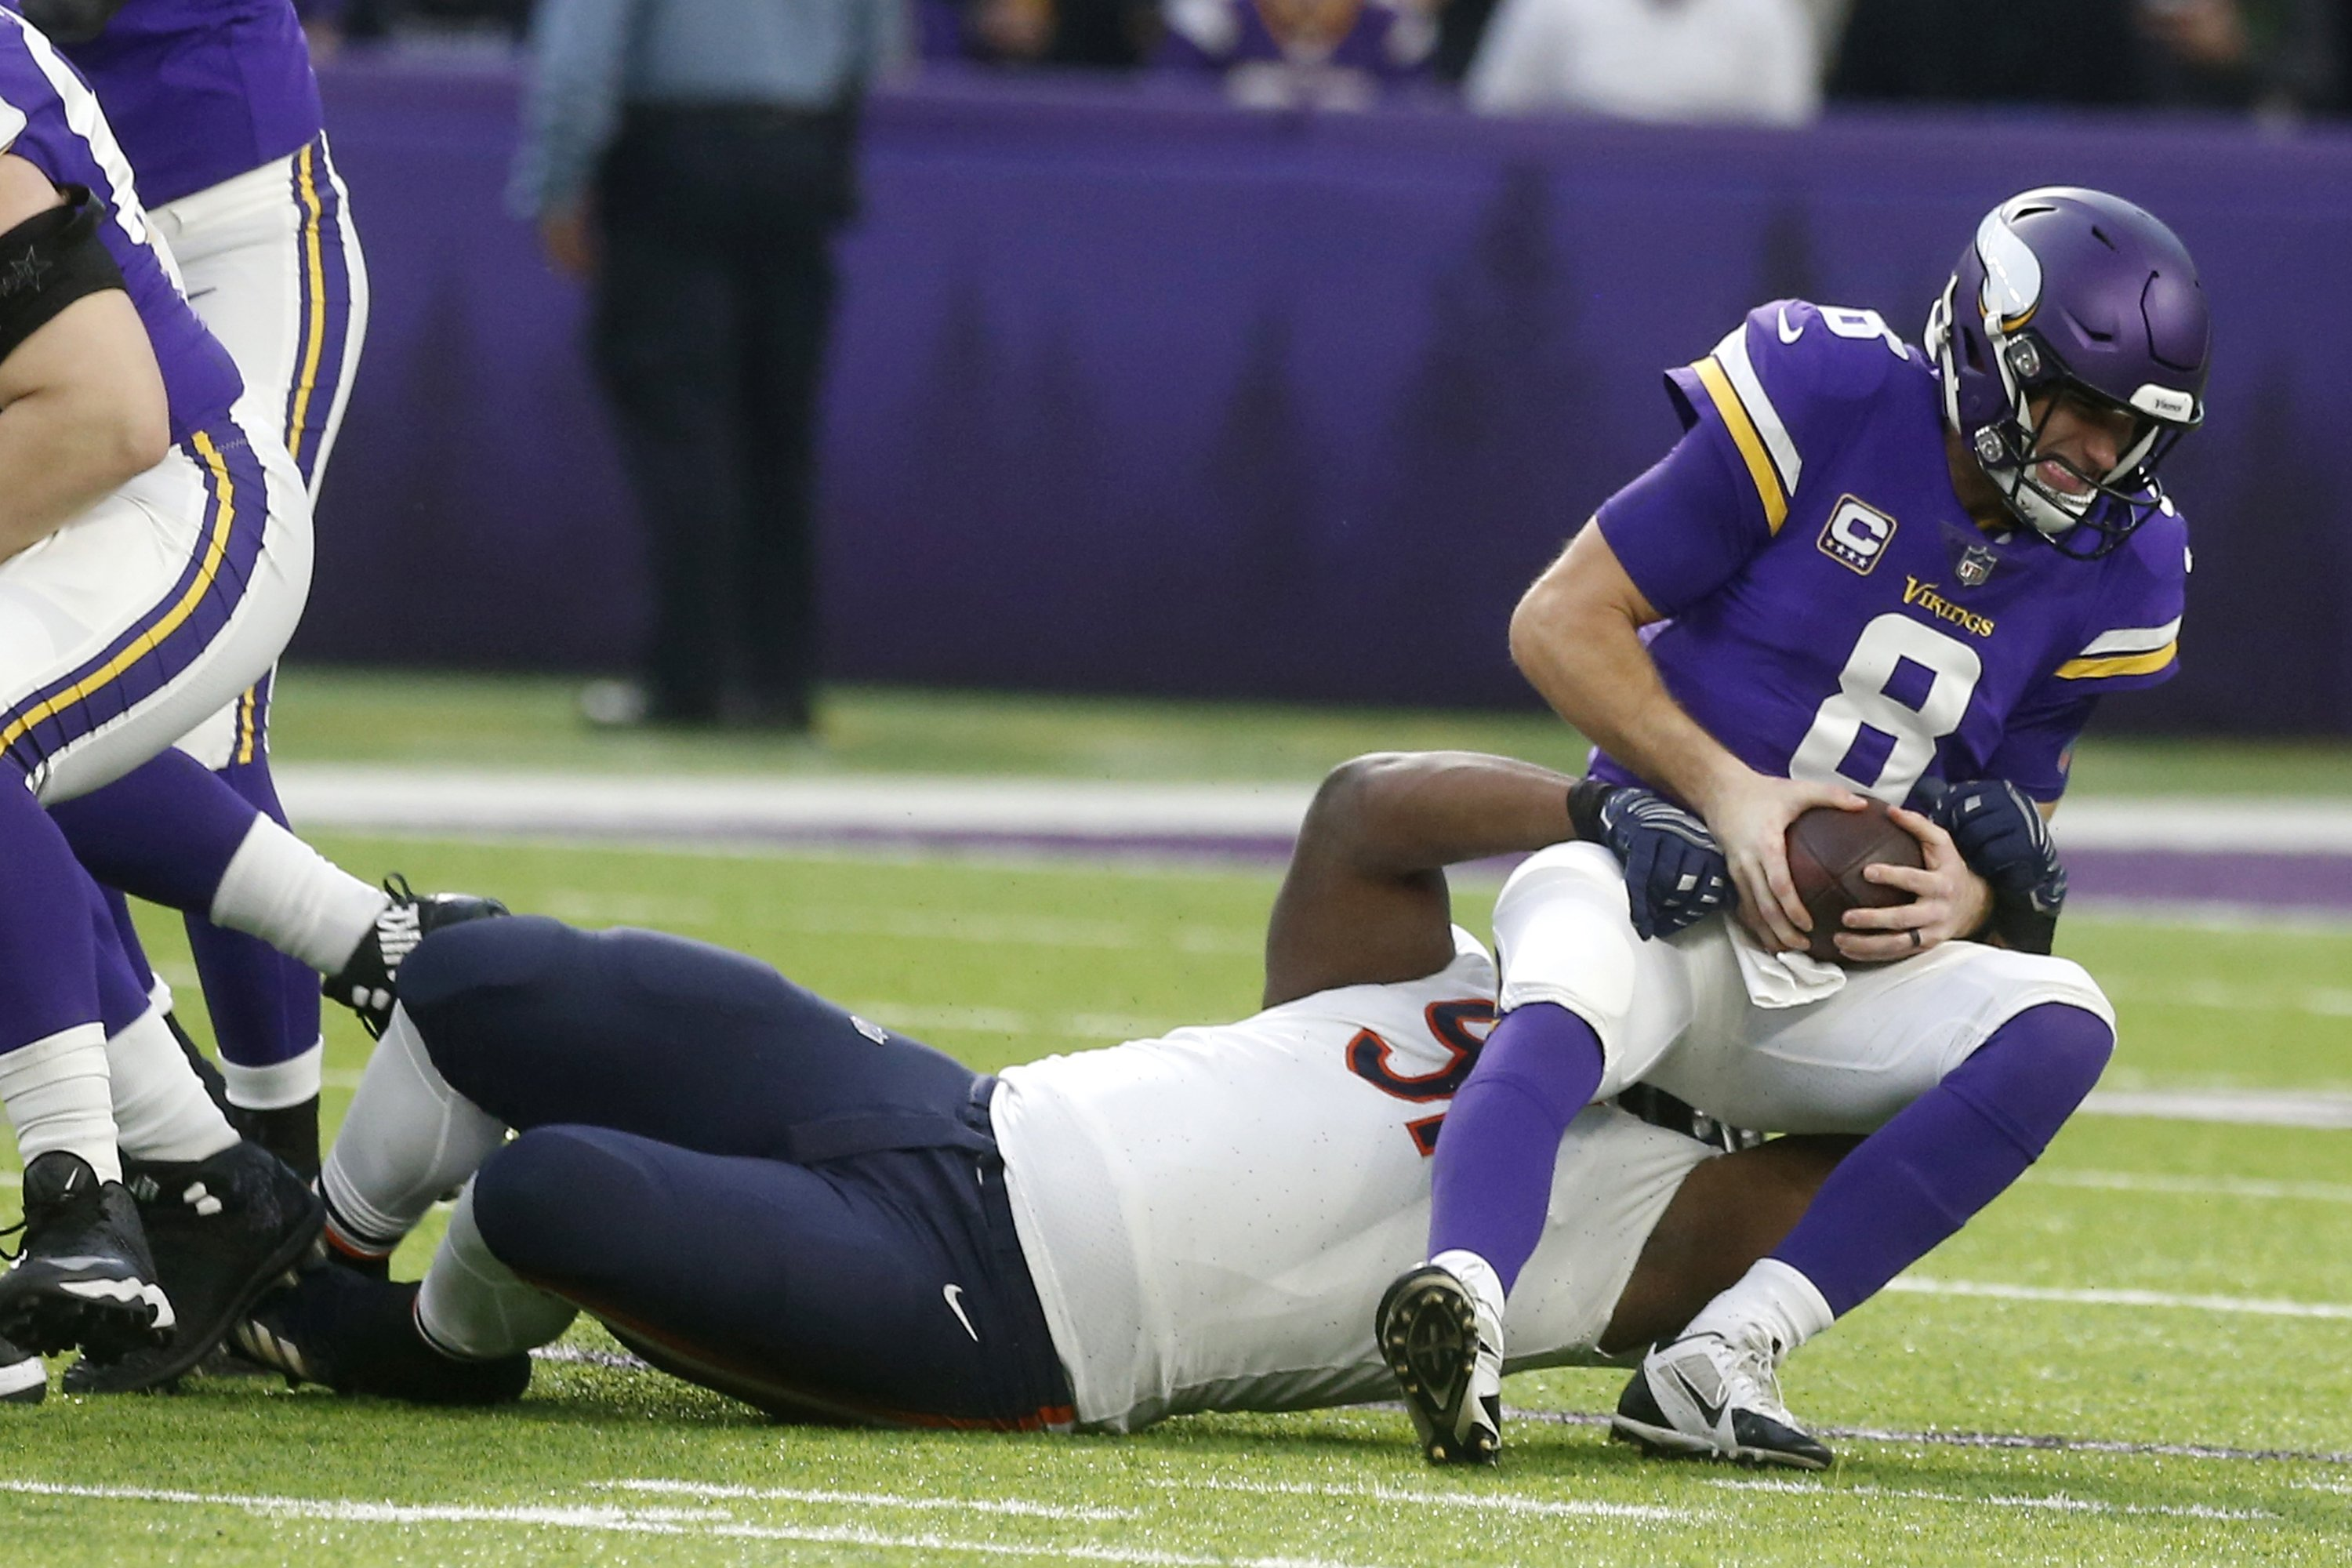 Nauseating or just right? NFL officiating in the crosshairs